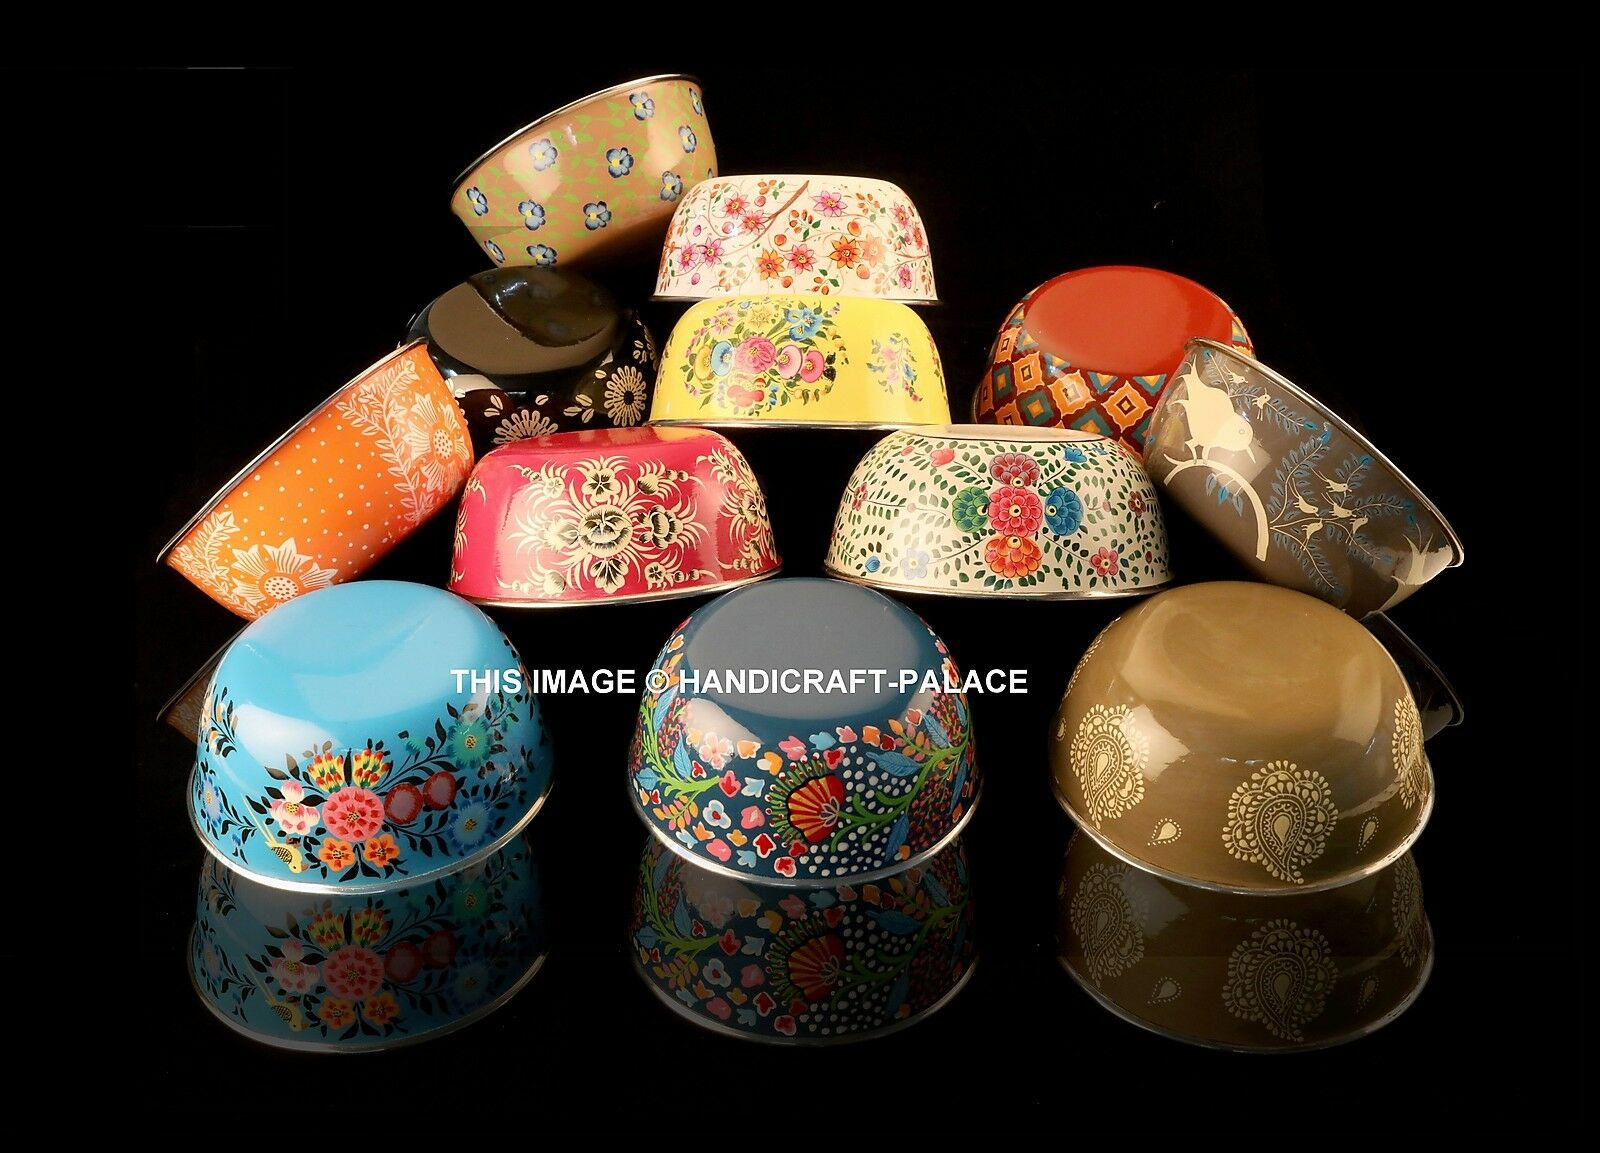 10 PC Wholesale Lot Stainless Steel Bowl Hand Painted Flower Serving Bowls Bowl